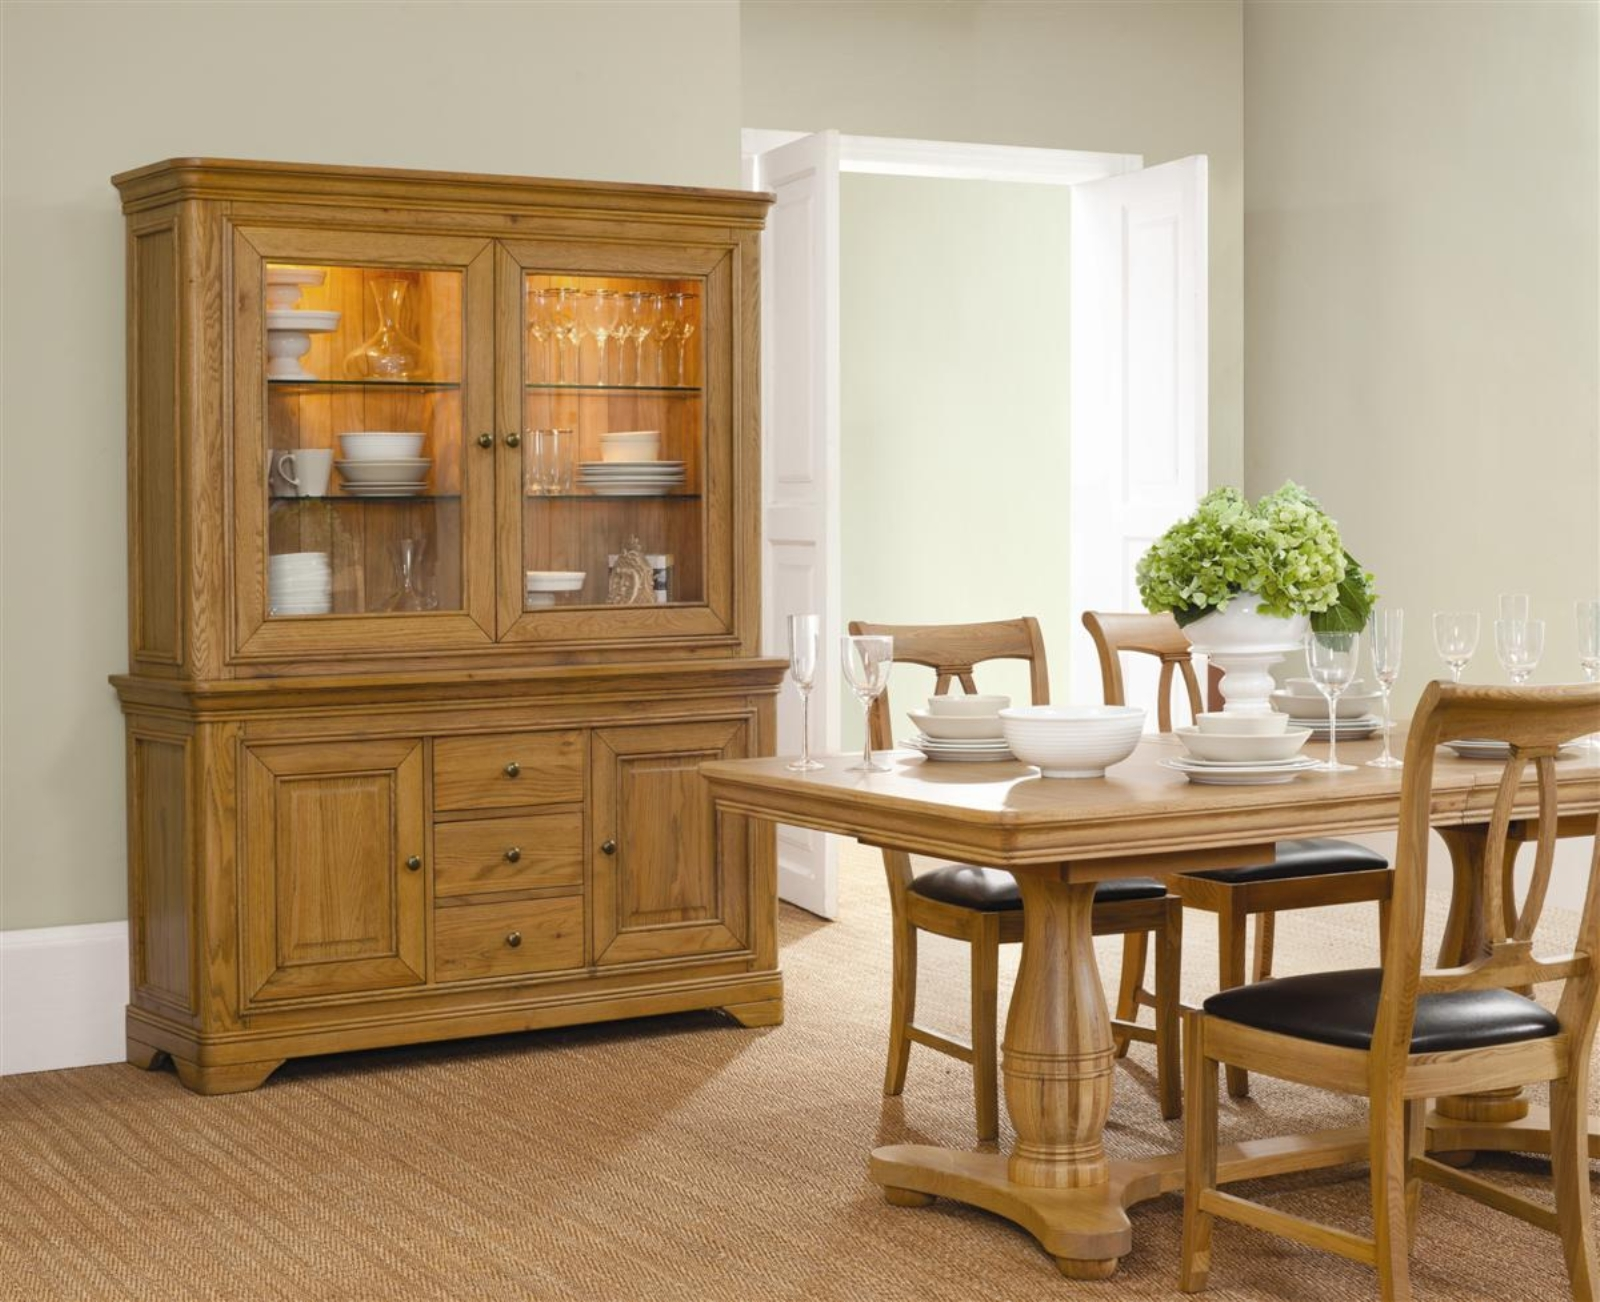 http://classicfurn.co.uk/media/download/frco_dining%20setting_uncroped.jpg